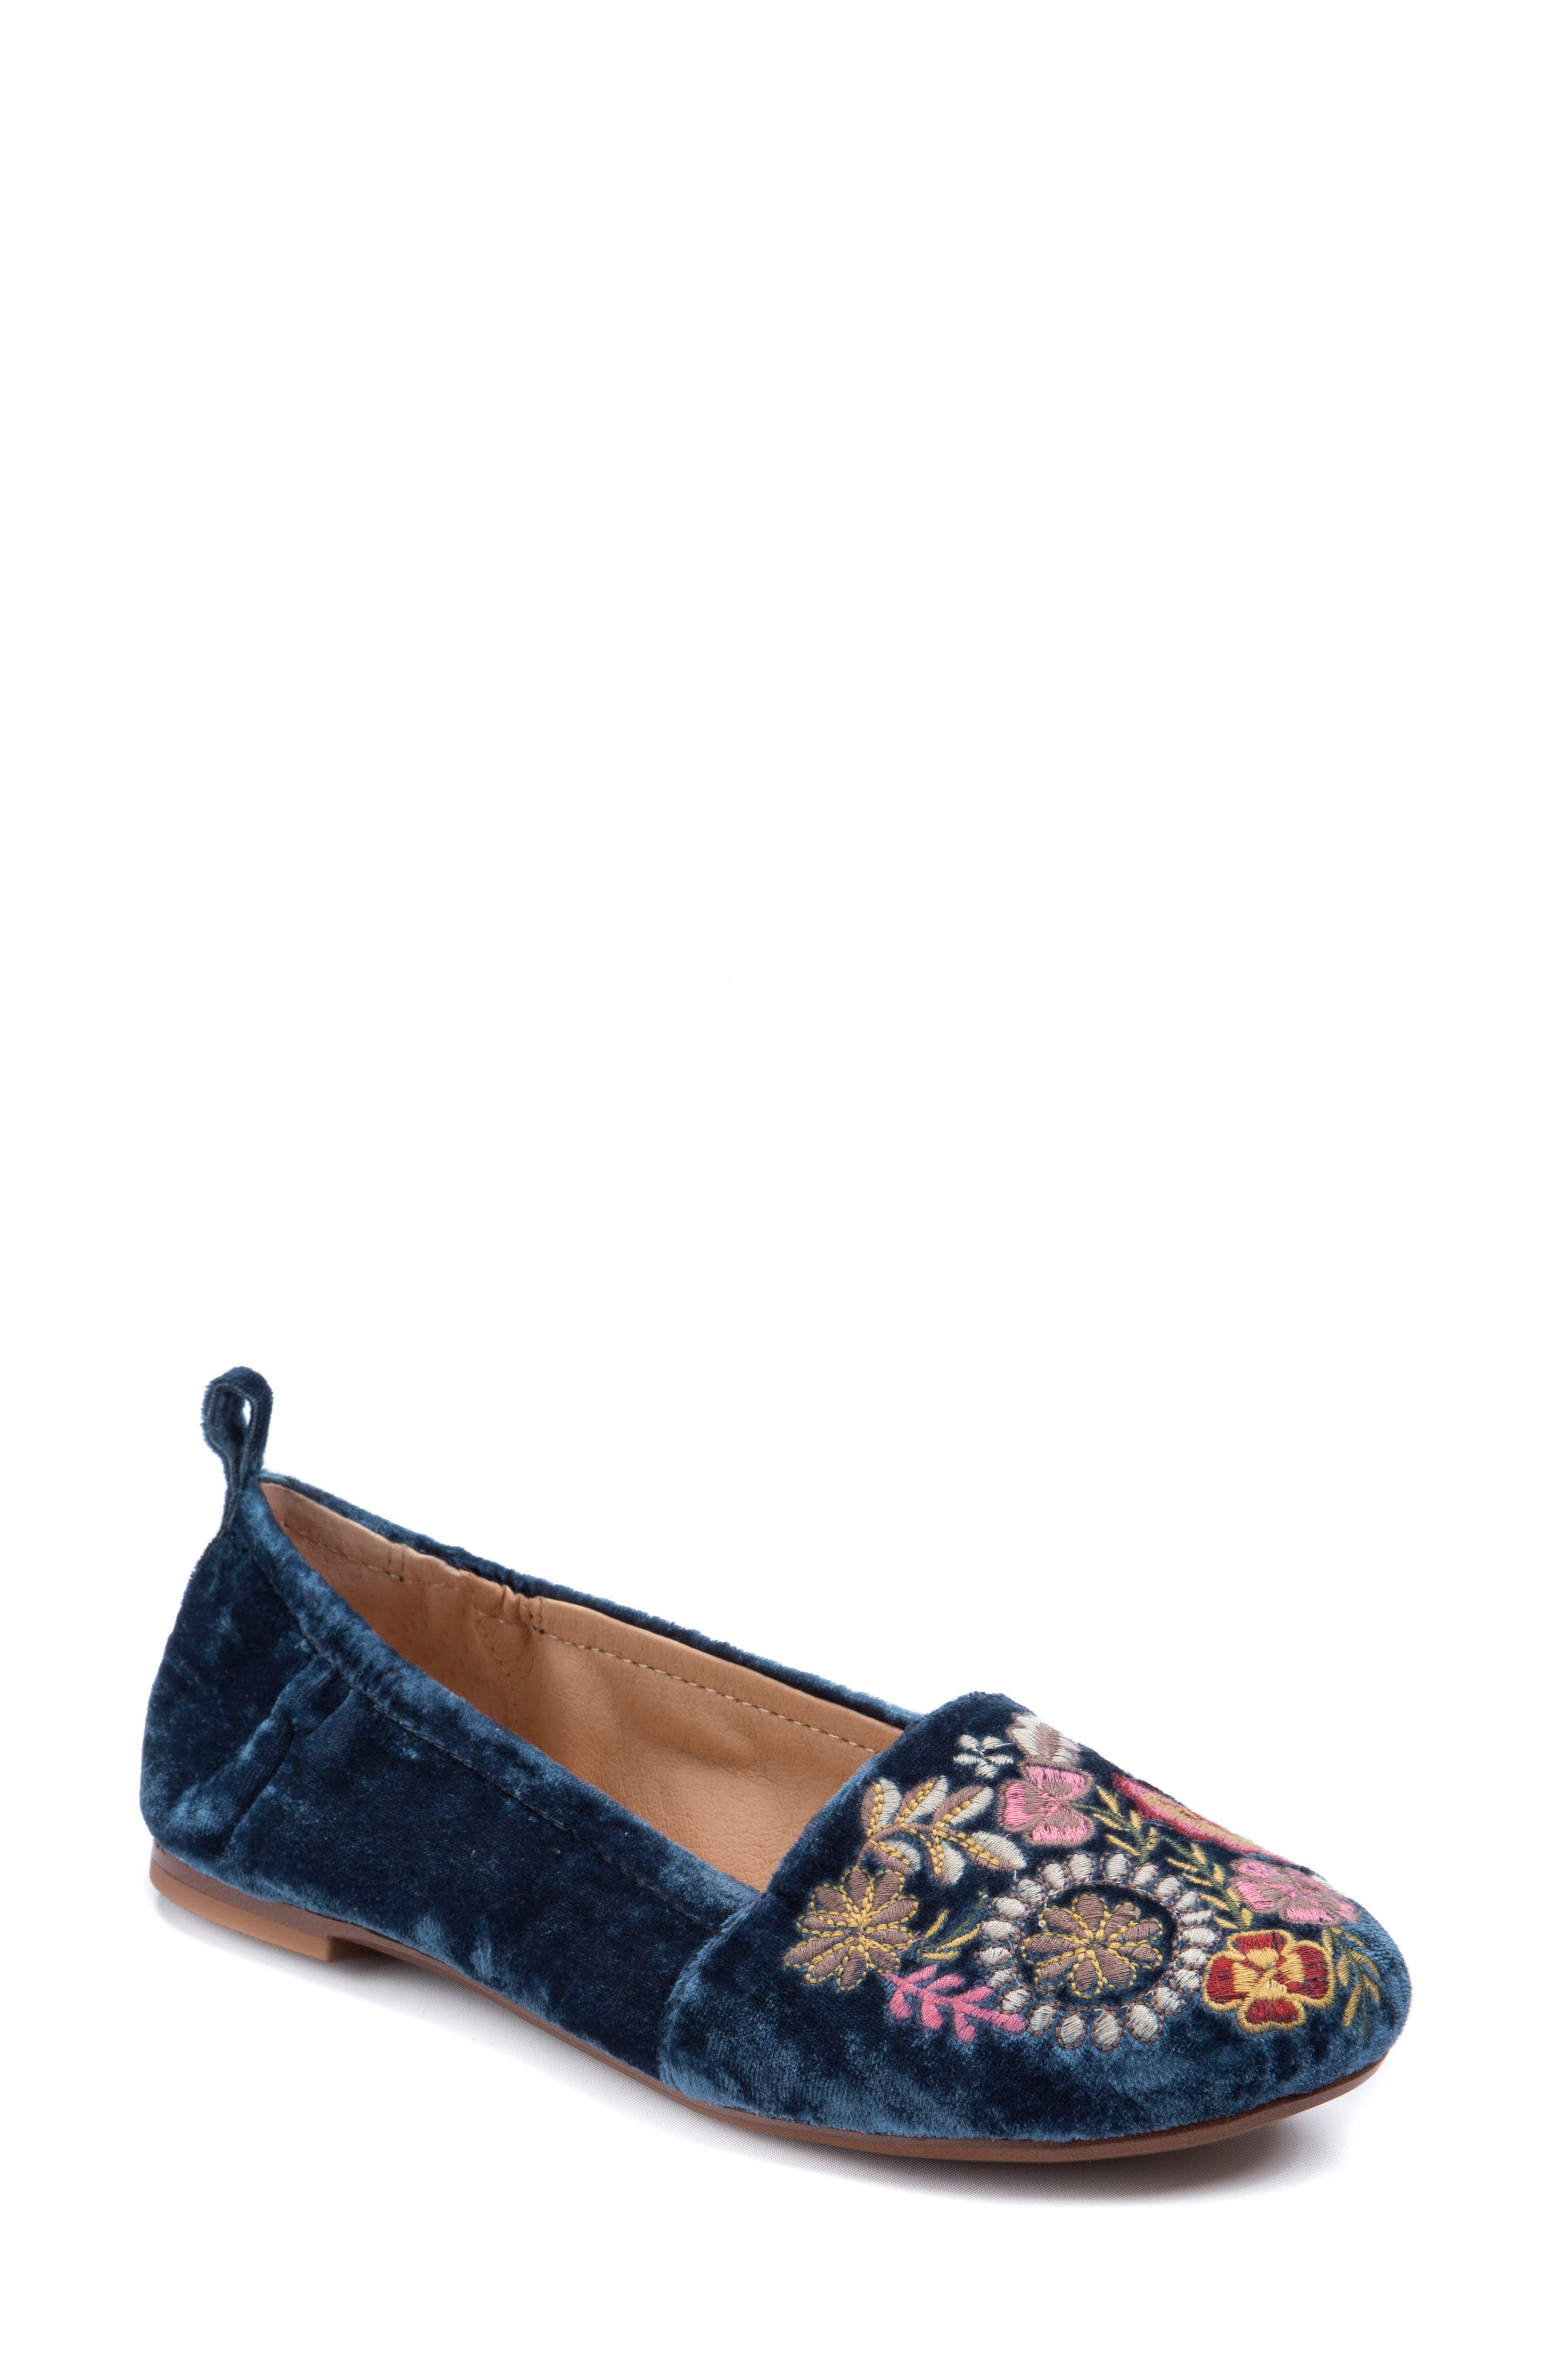 Gayla Floral Embroidered Flat,                         Main,                         color,